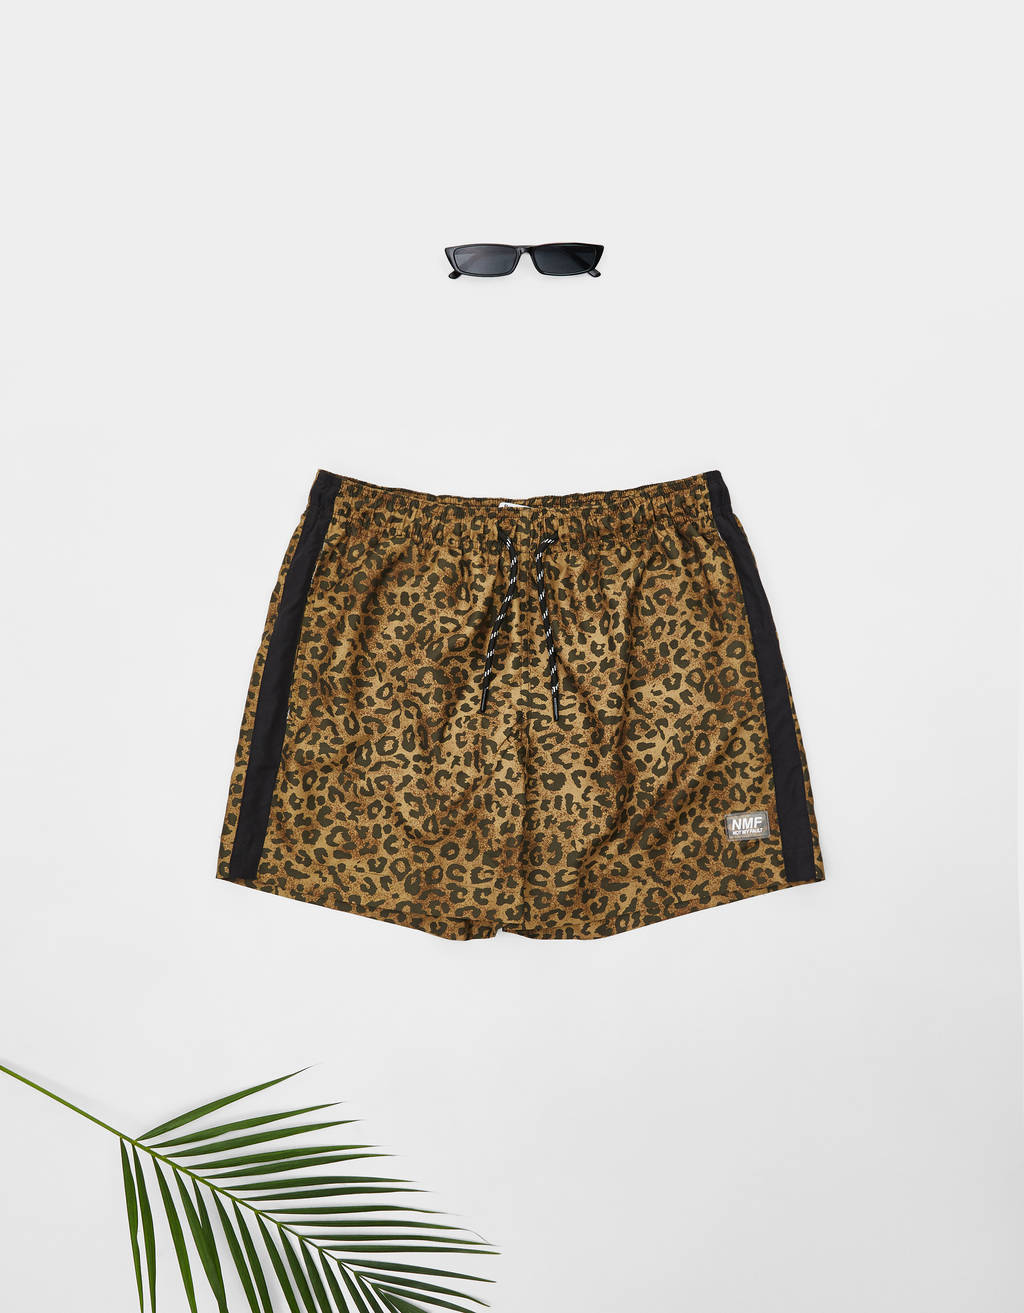 Leopard print swimming trunks